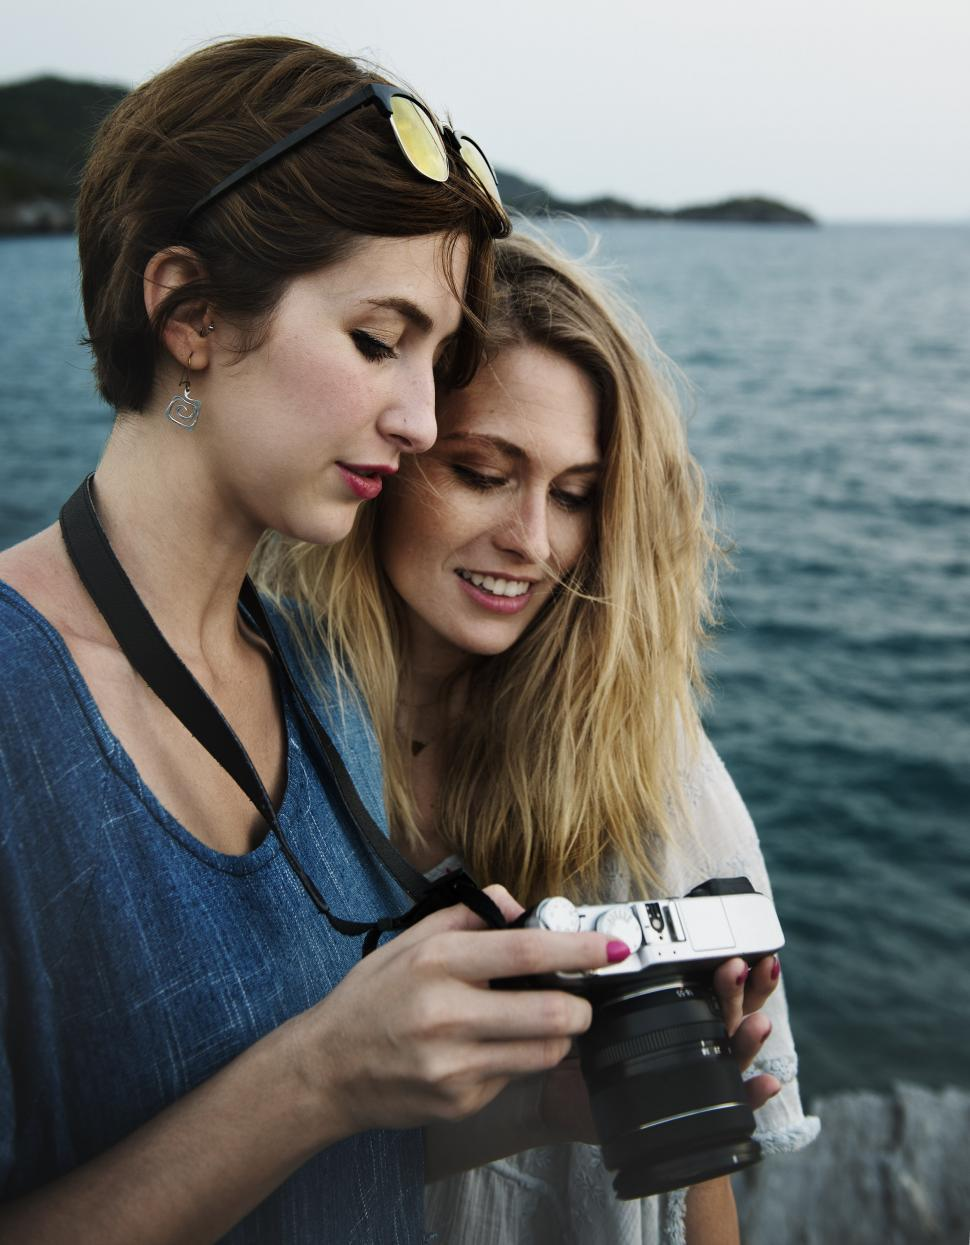 Download Free Stock HD Photo of Two young women looking at their photograph on the cam Online